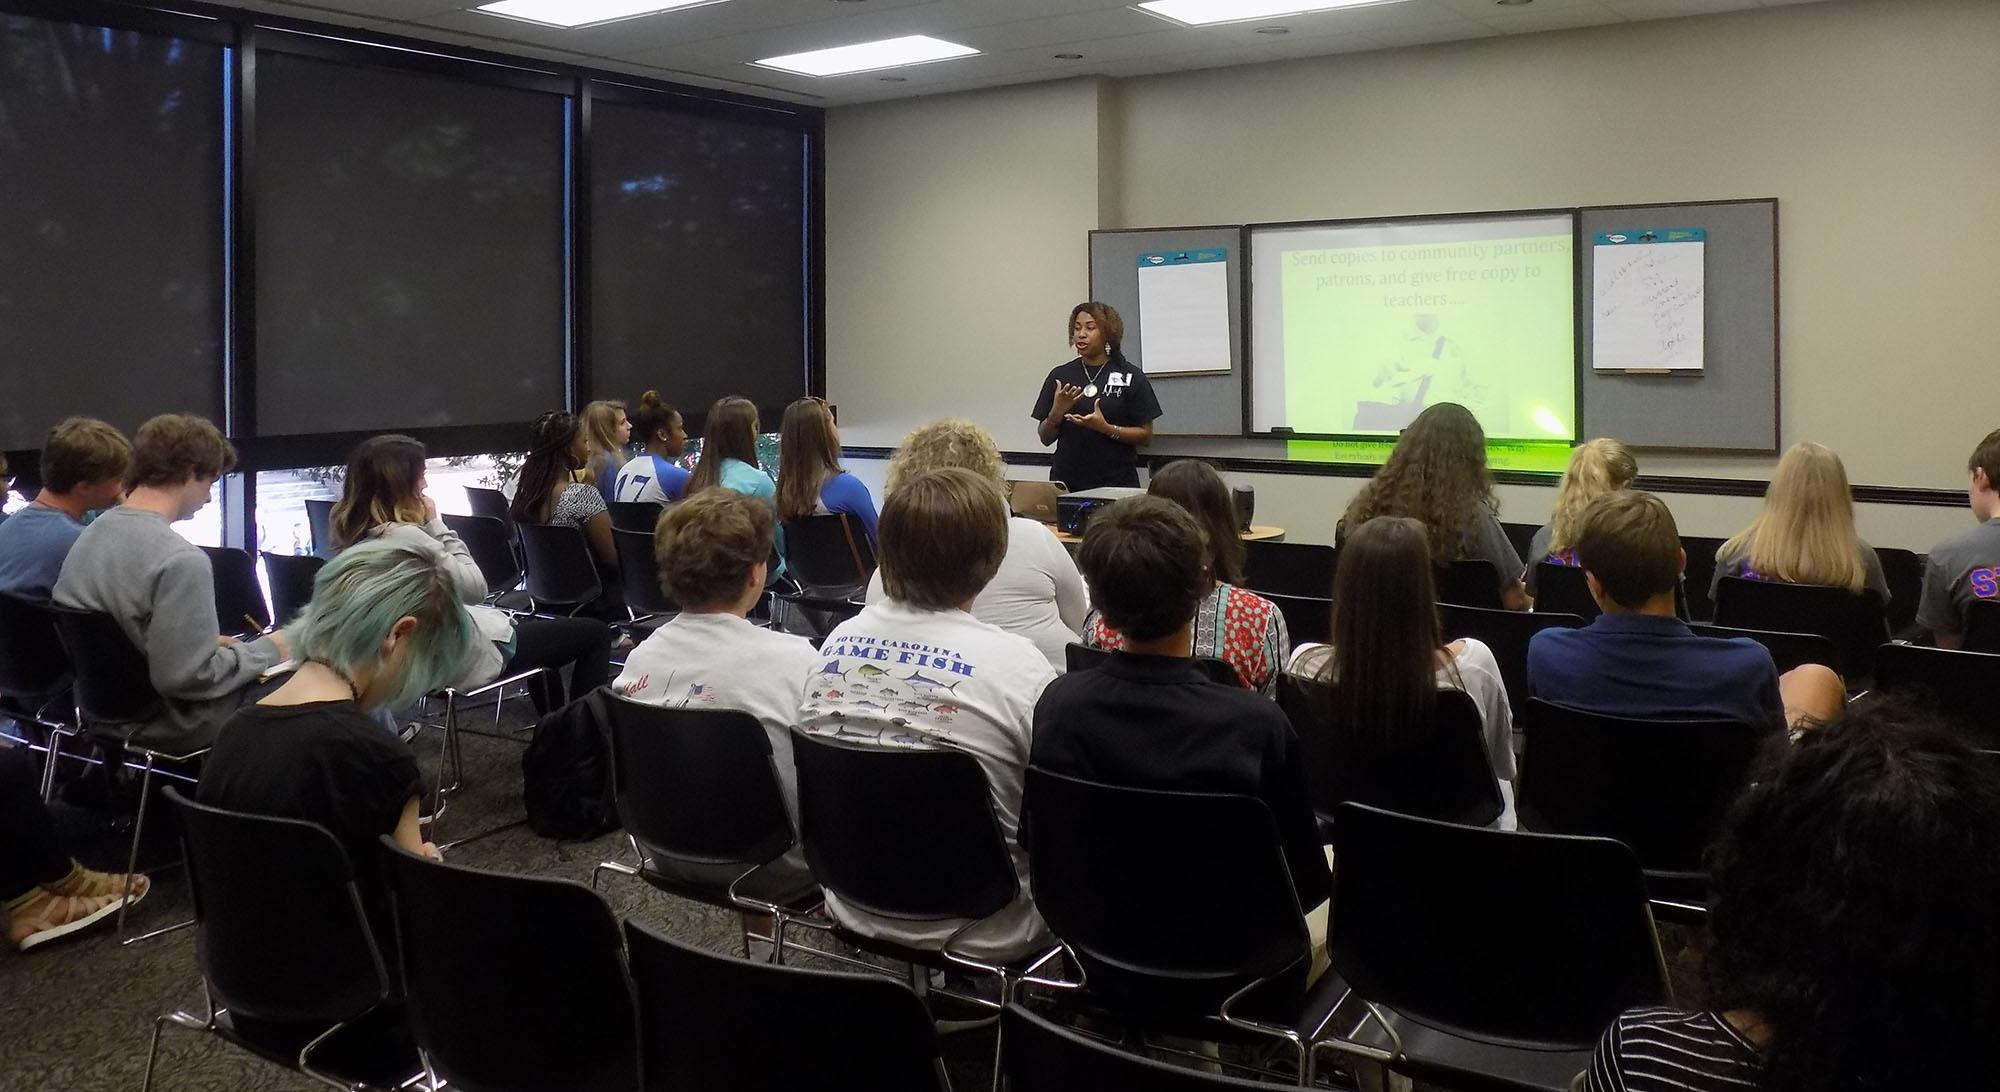 Teaching A Session on Marketing for the Masses